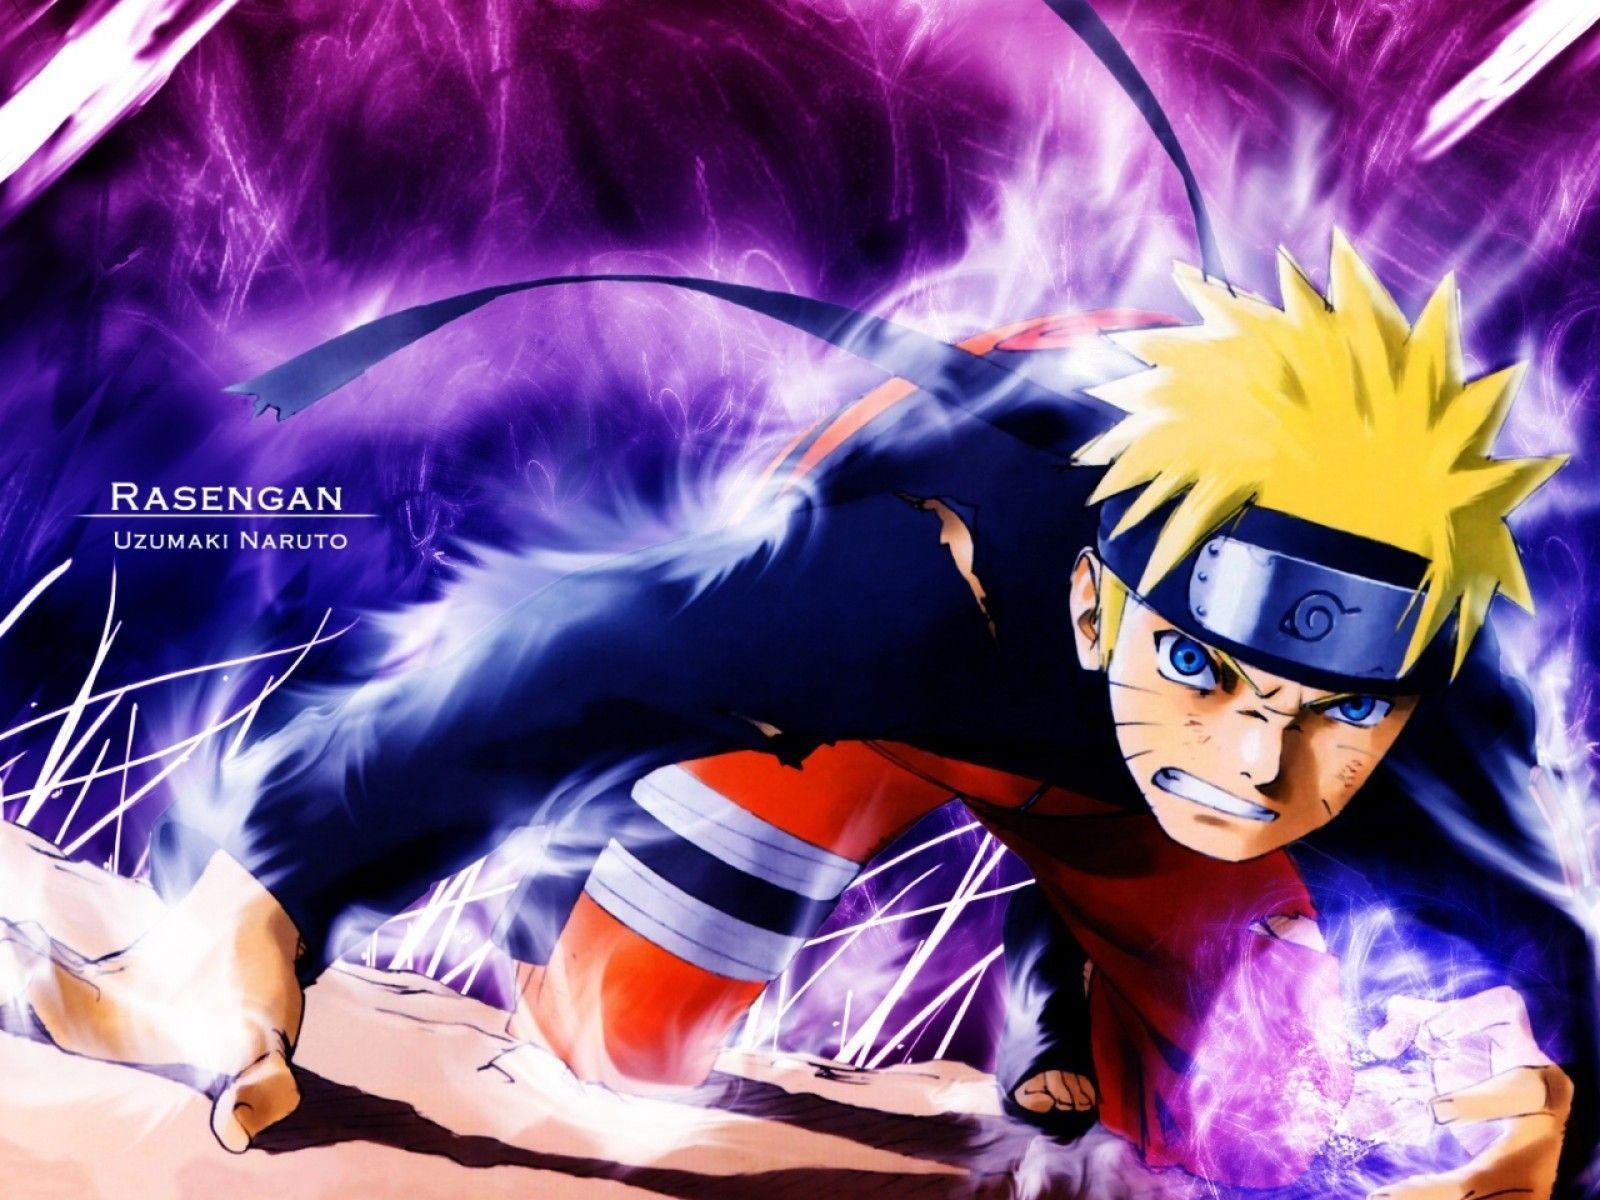 Naruto Shippuden - Rasengan HD Wallpaper | Animation Wallpapers